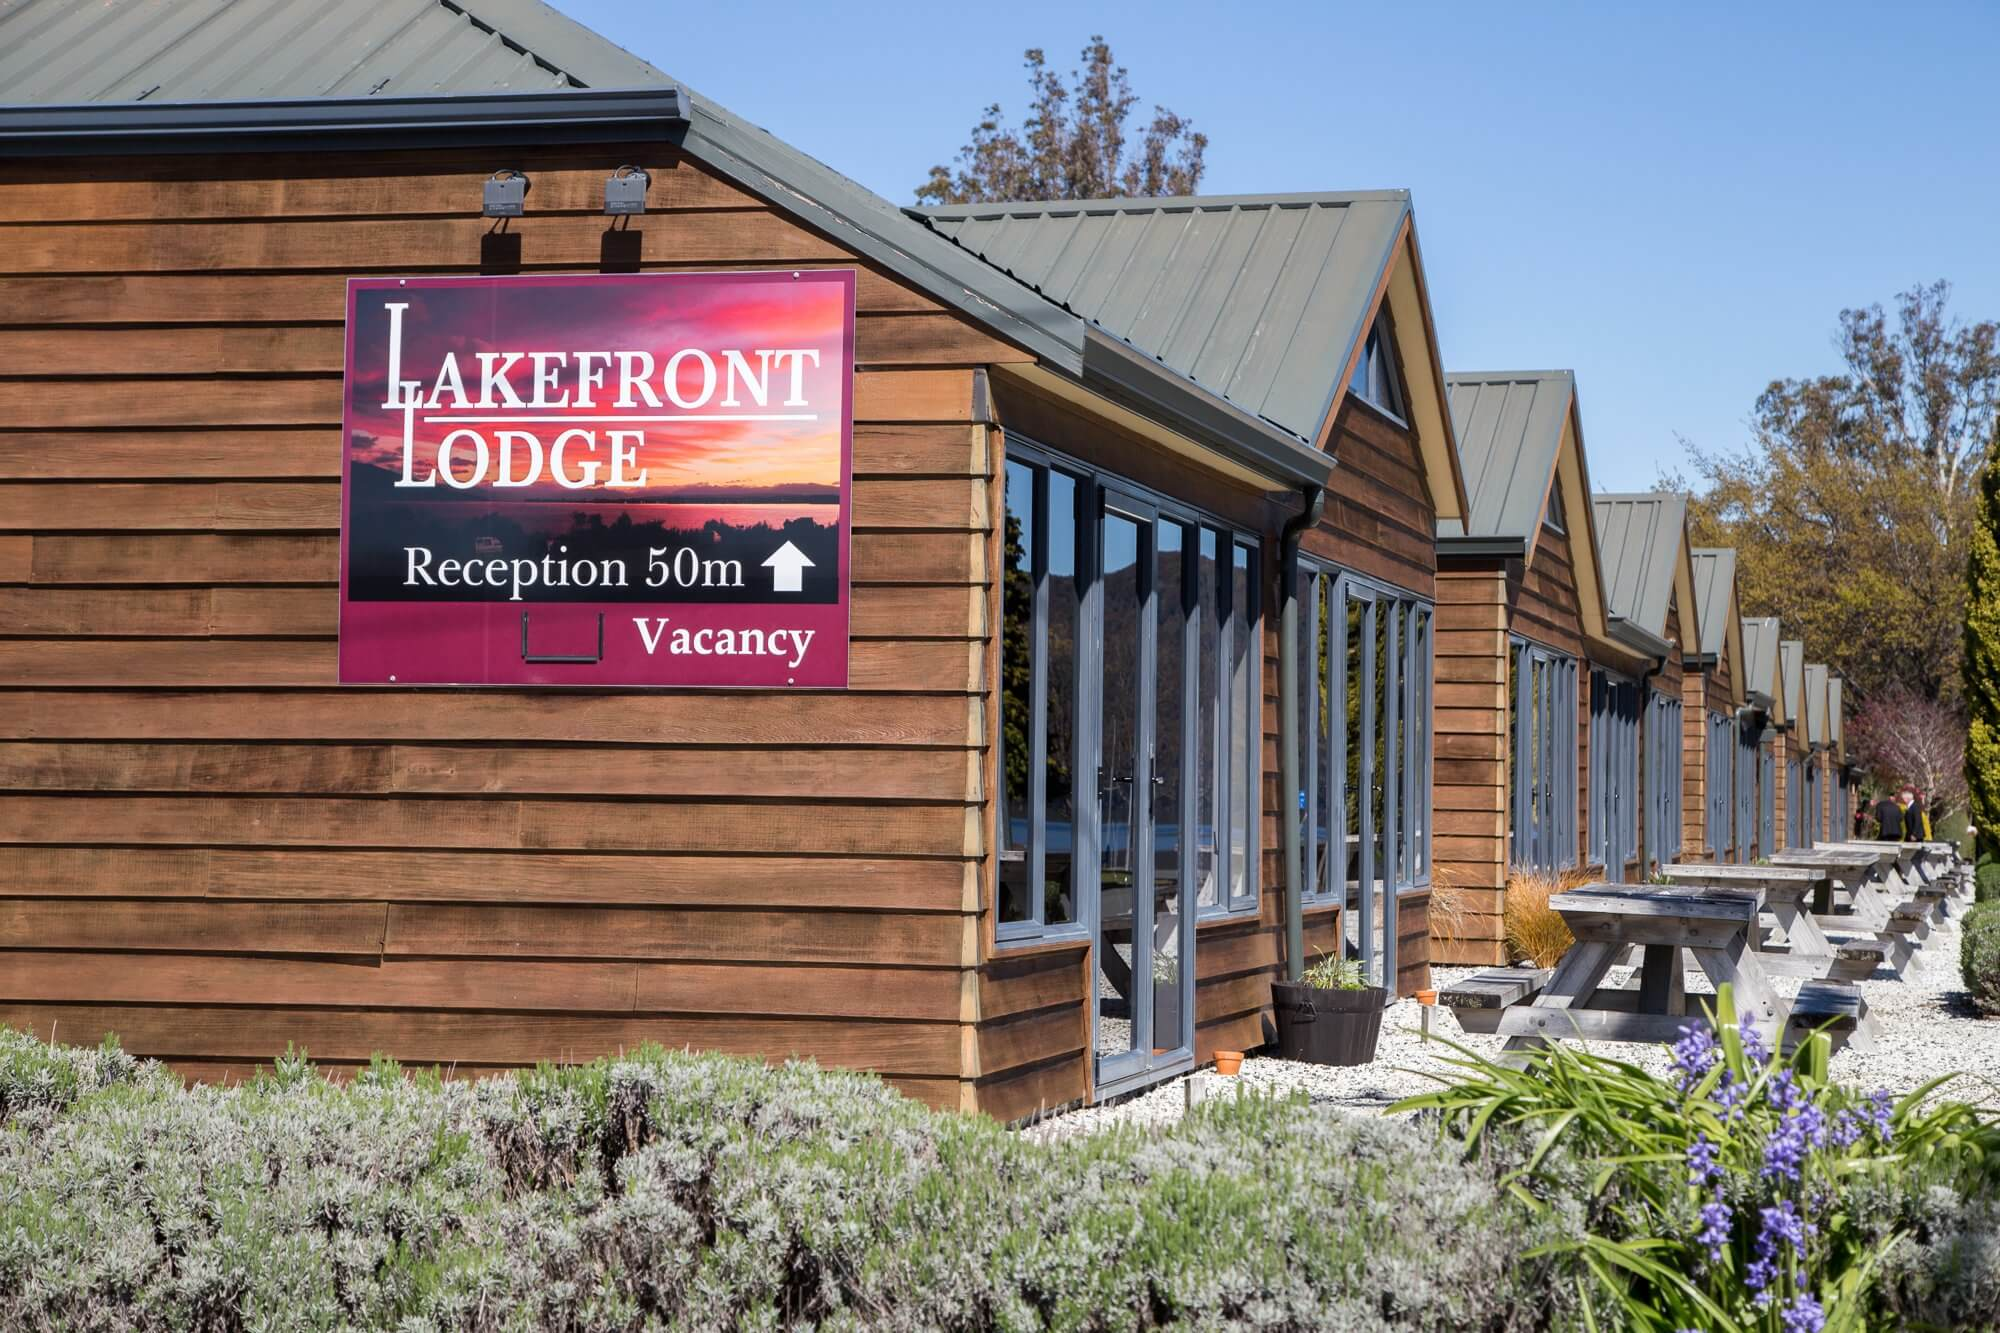 Lakefront Lodge signage at the rear of building